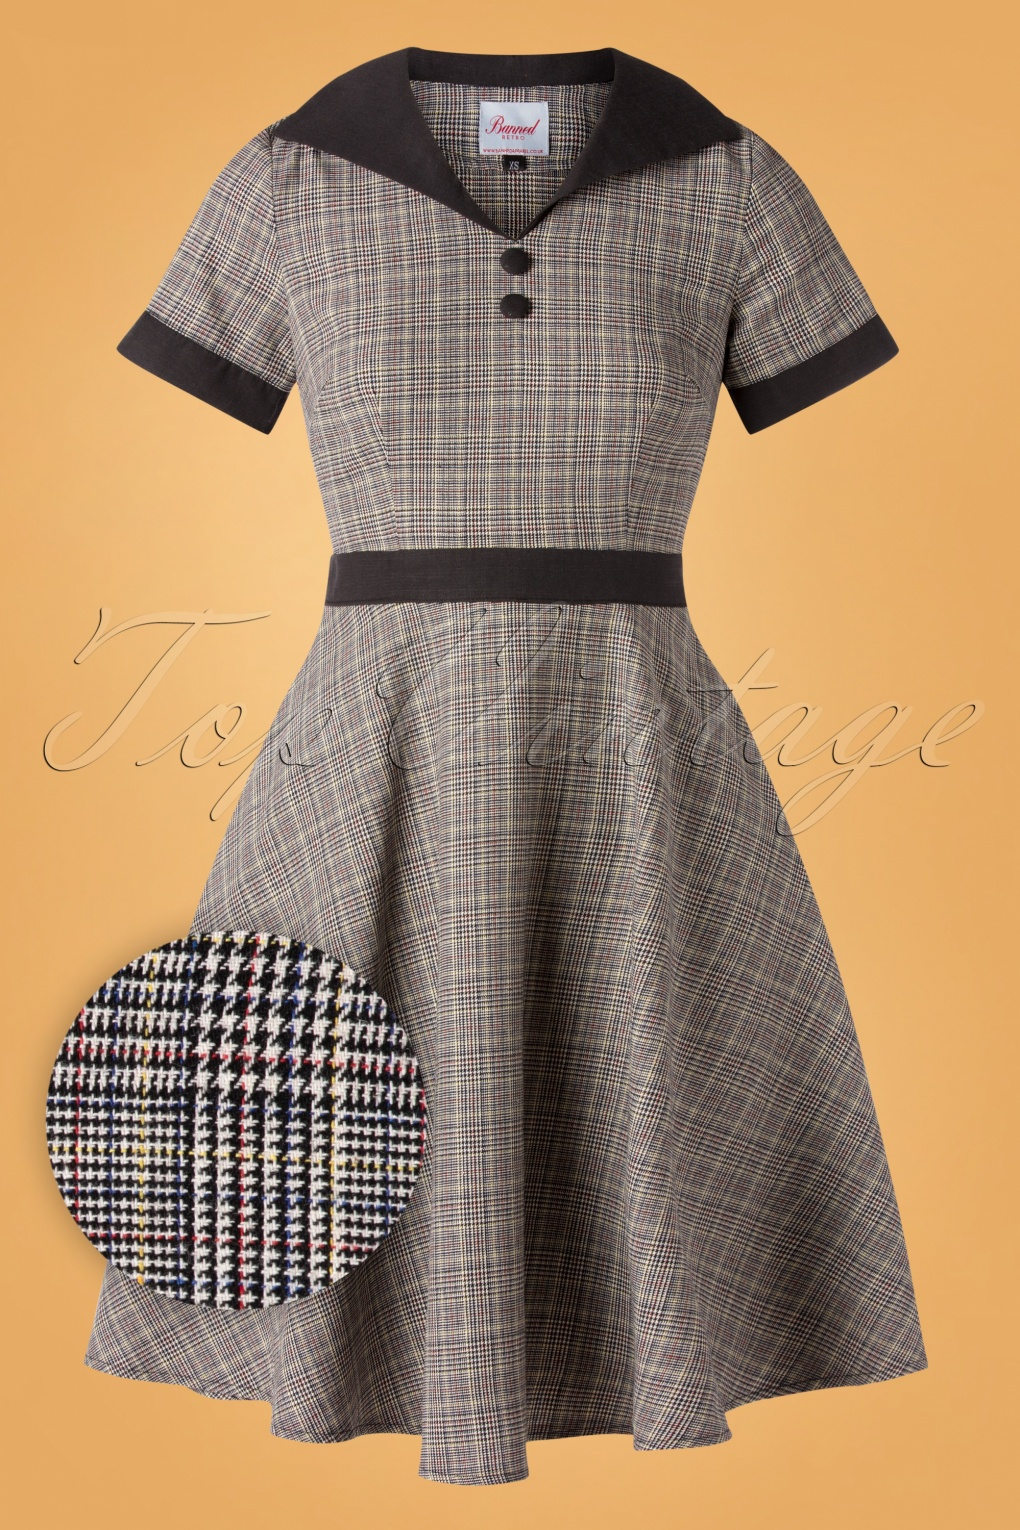 Fifties Dresses : 1950s Style Swing to Wiggle Dresses 50s Happy Check Diner Dress in Grey £47.22 AT vintagedancer.com